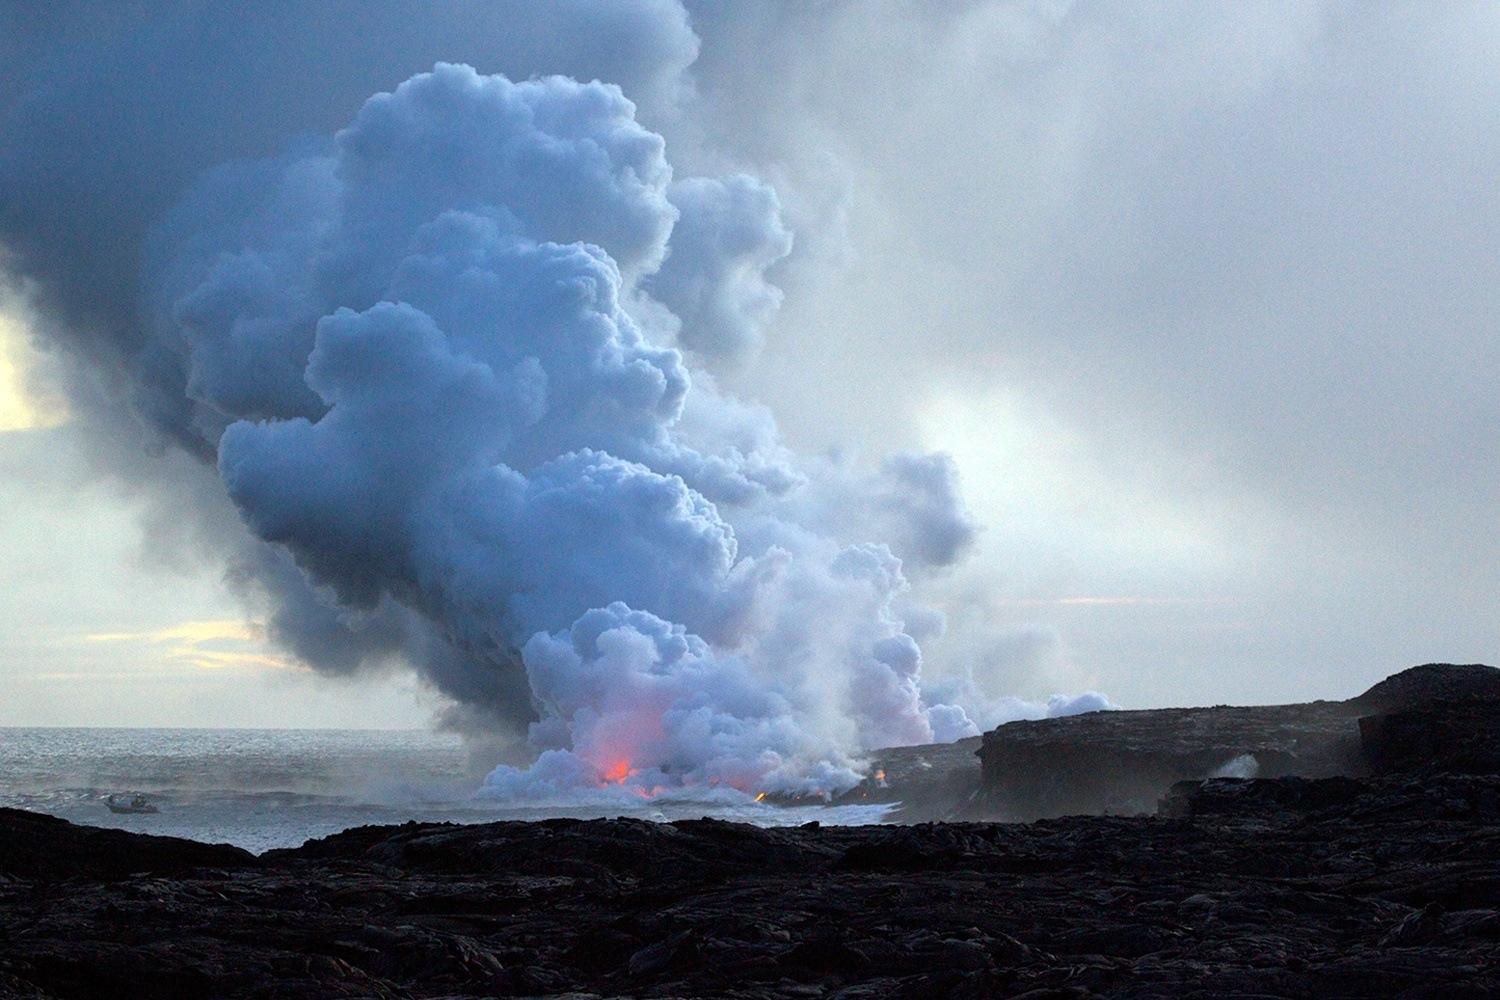 Enjoy the endless flow of lava into the sea at the Hawai'i Volcanoes National Park. (Credit: Matt MacGillivray)